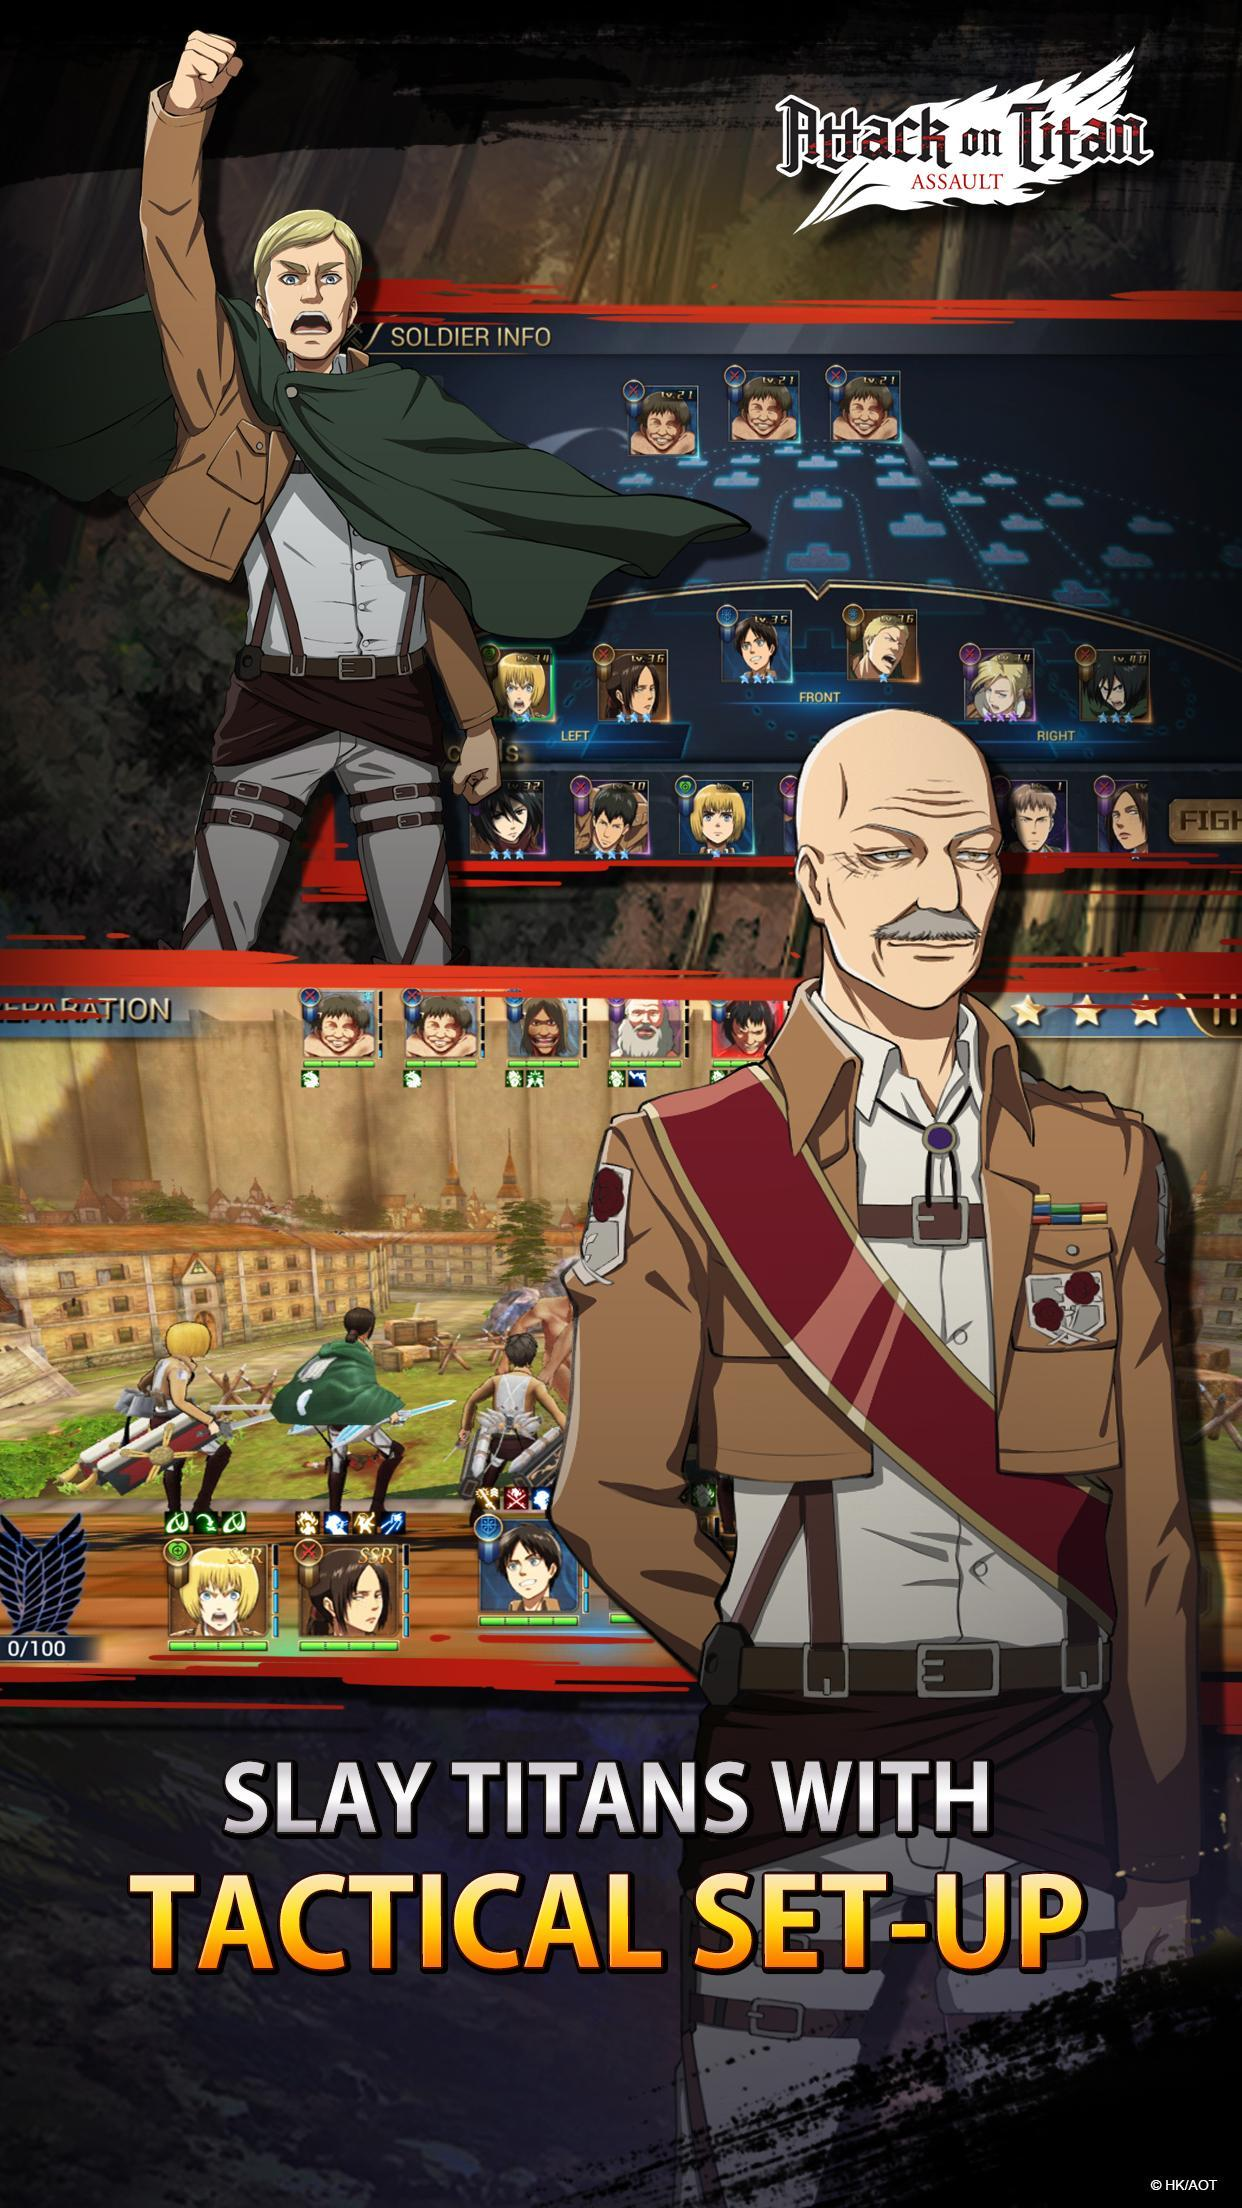 Attack on Titan: Assault for Android - APK Download